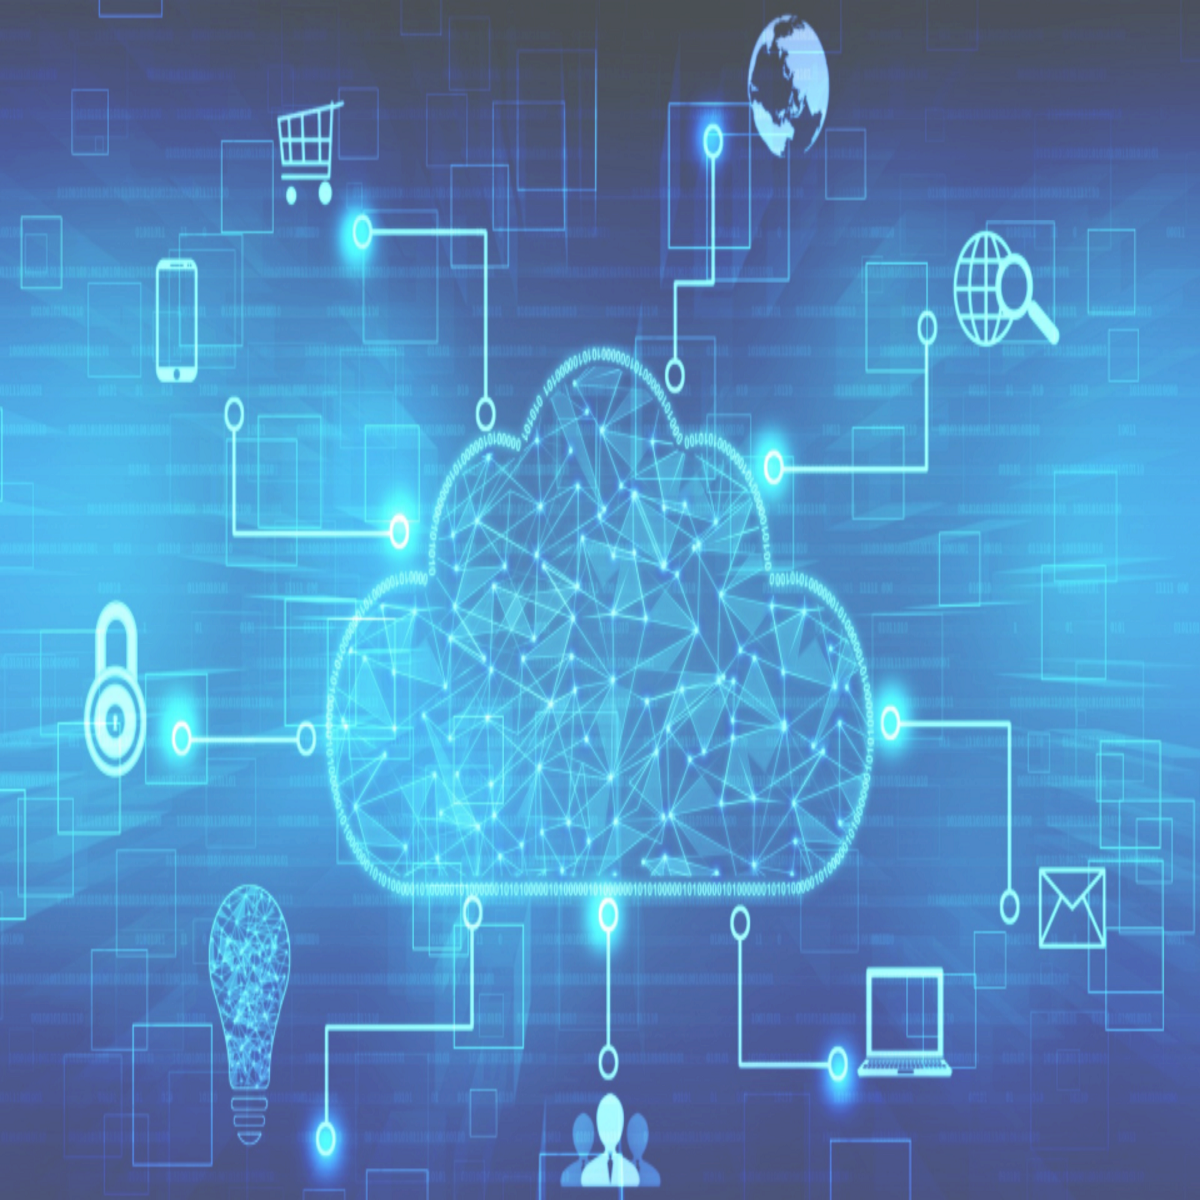 cloud costs from multi-devices connectivity